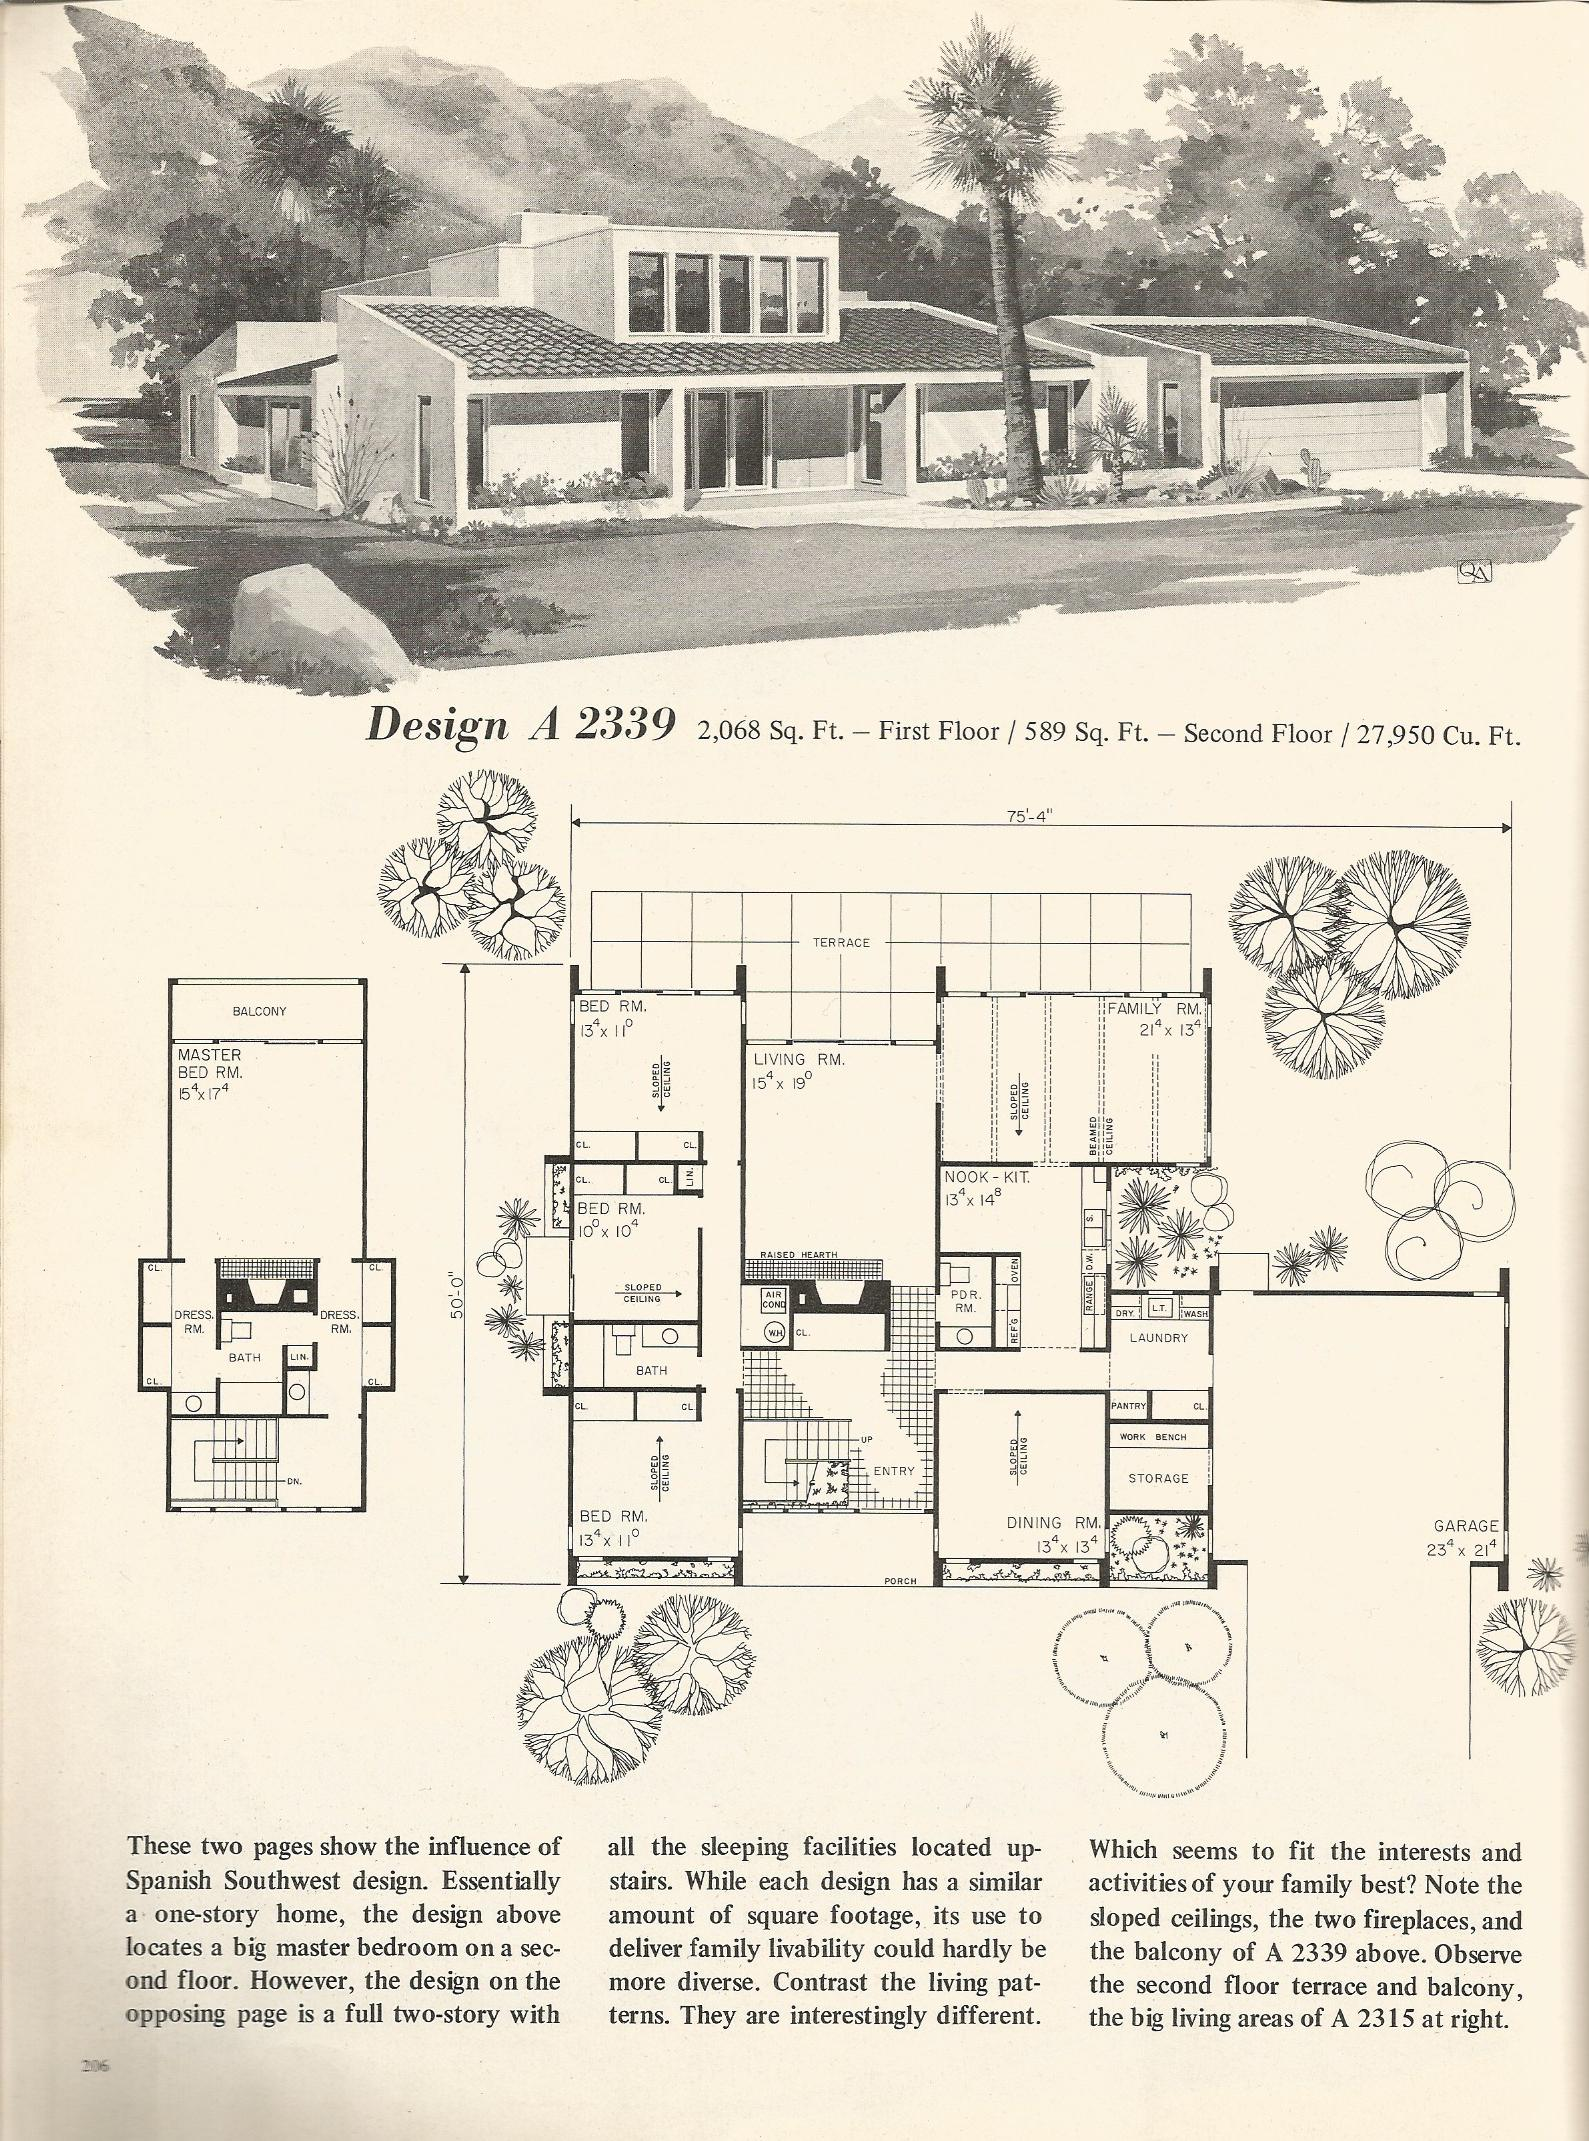 Vintage house plans 2339 antique alter ego for 1970s house floor plans